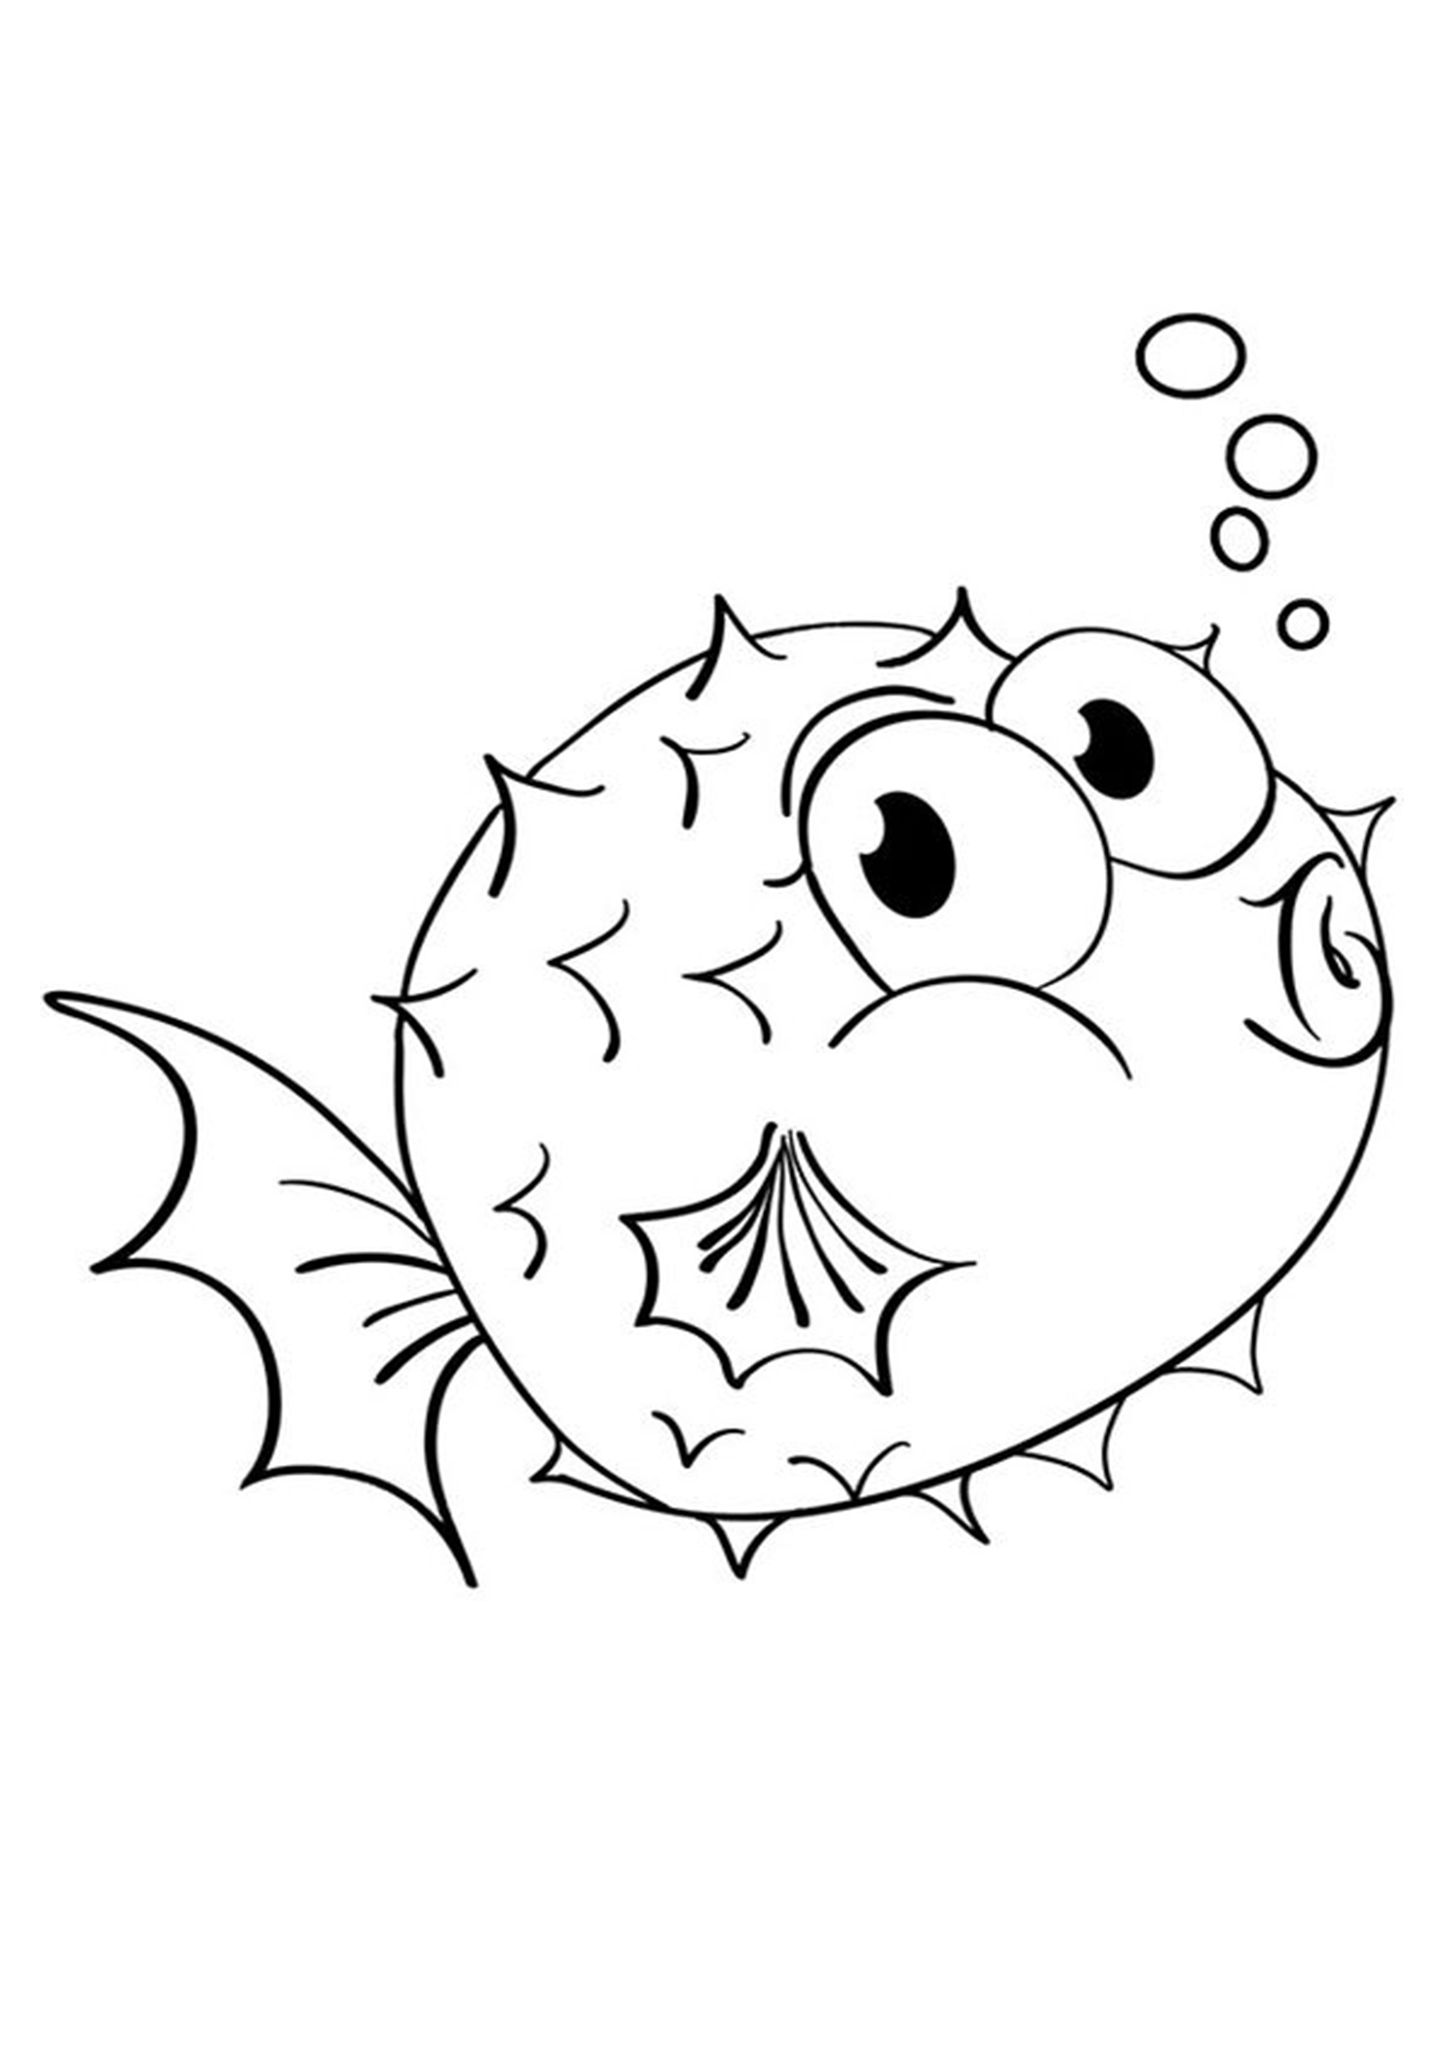 Free Easy To Print Fish Coloring Pages Fish Coloring Page Animal Coloring Pages Fish Printables